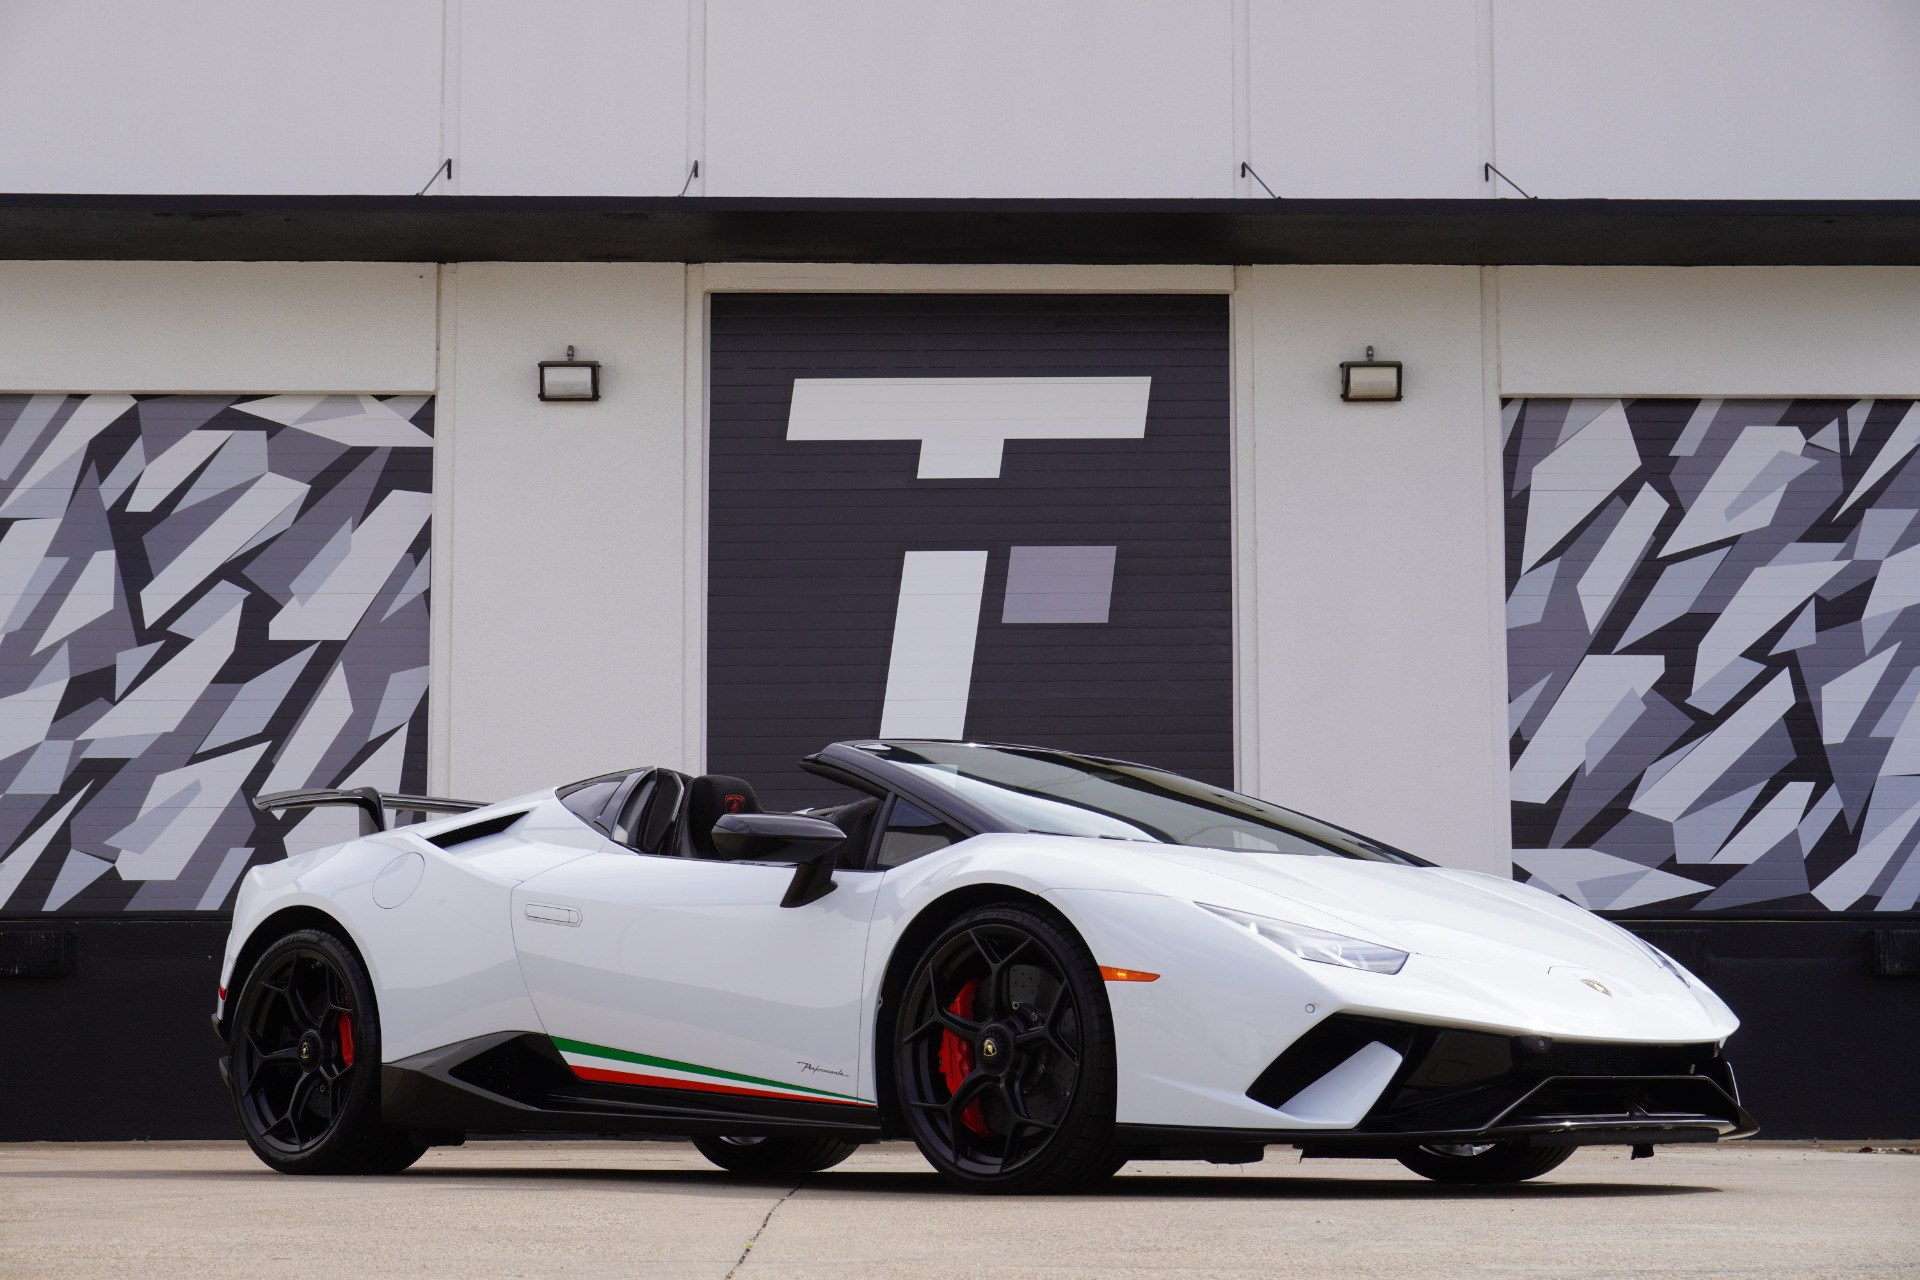 Used 2018 Lamborghini Huracan LP 640-4 Performante Spyder | Addison, TX